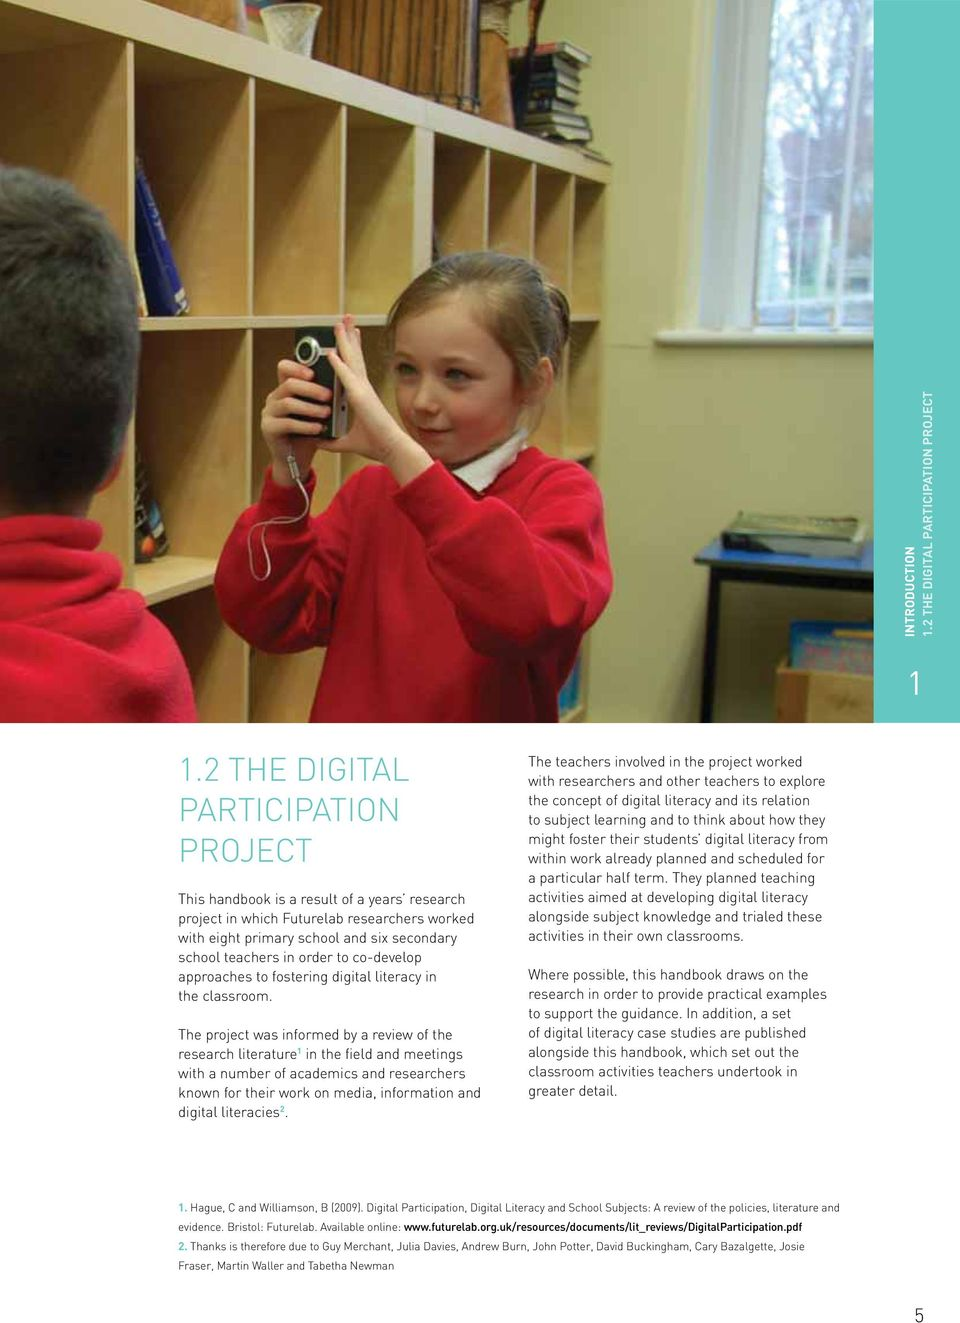 co-develop approaches to fostering digital literacy in the classroom.